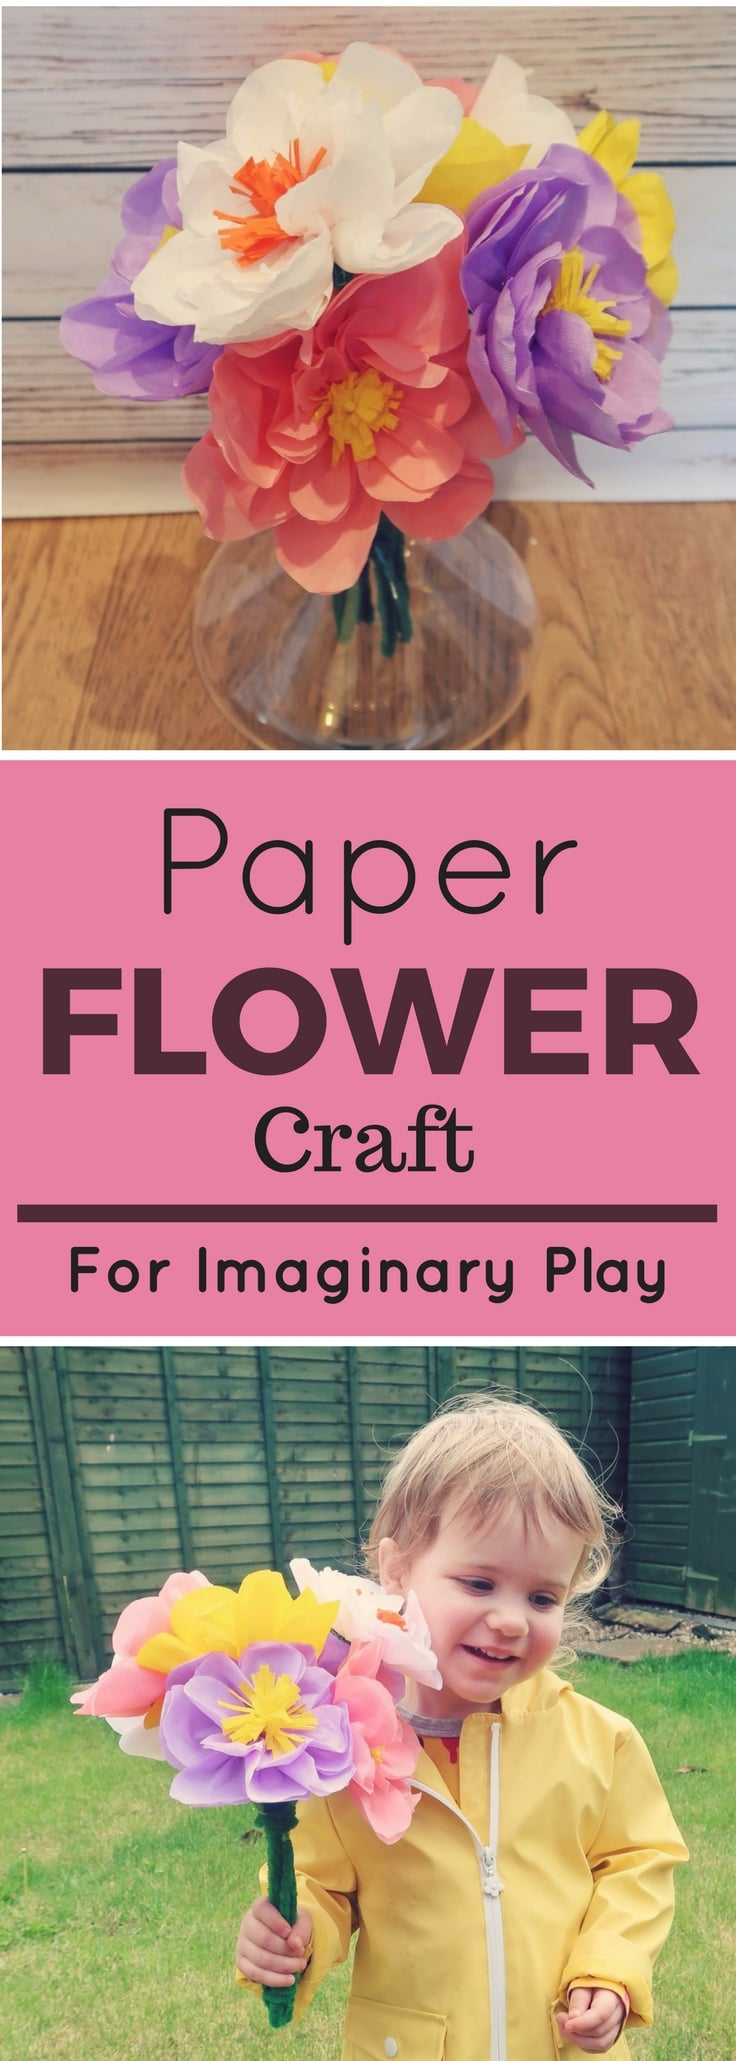 Paper Flowers Craft for Imaginary Play - create a bouquet of paper flowers for playing and dress-up.